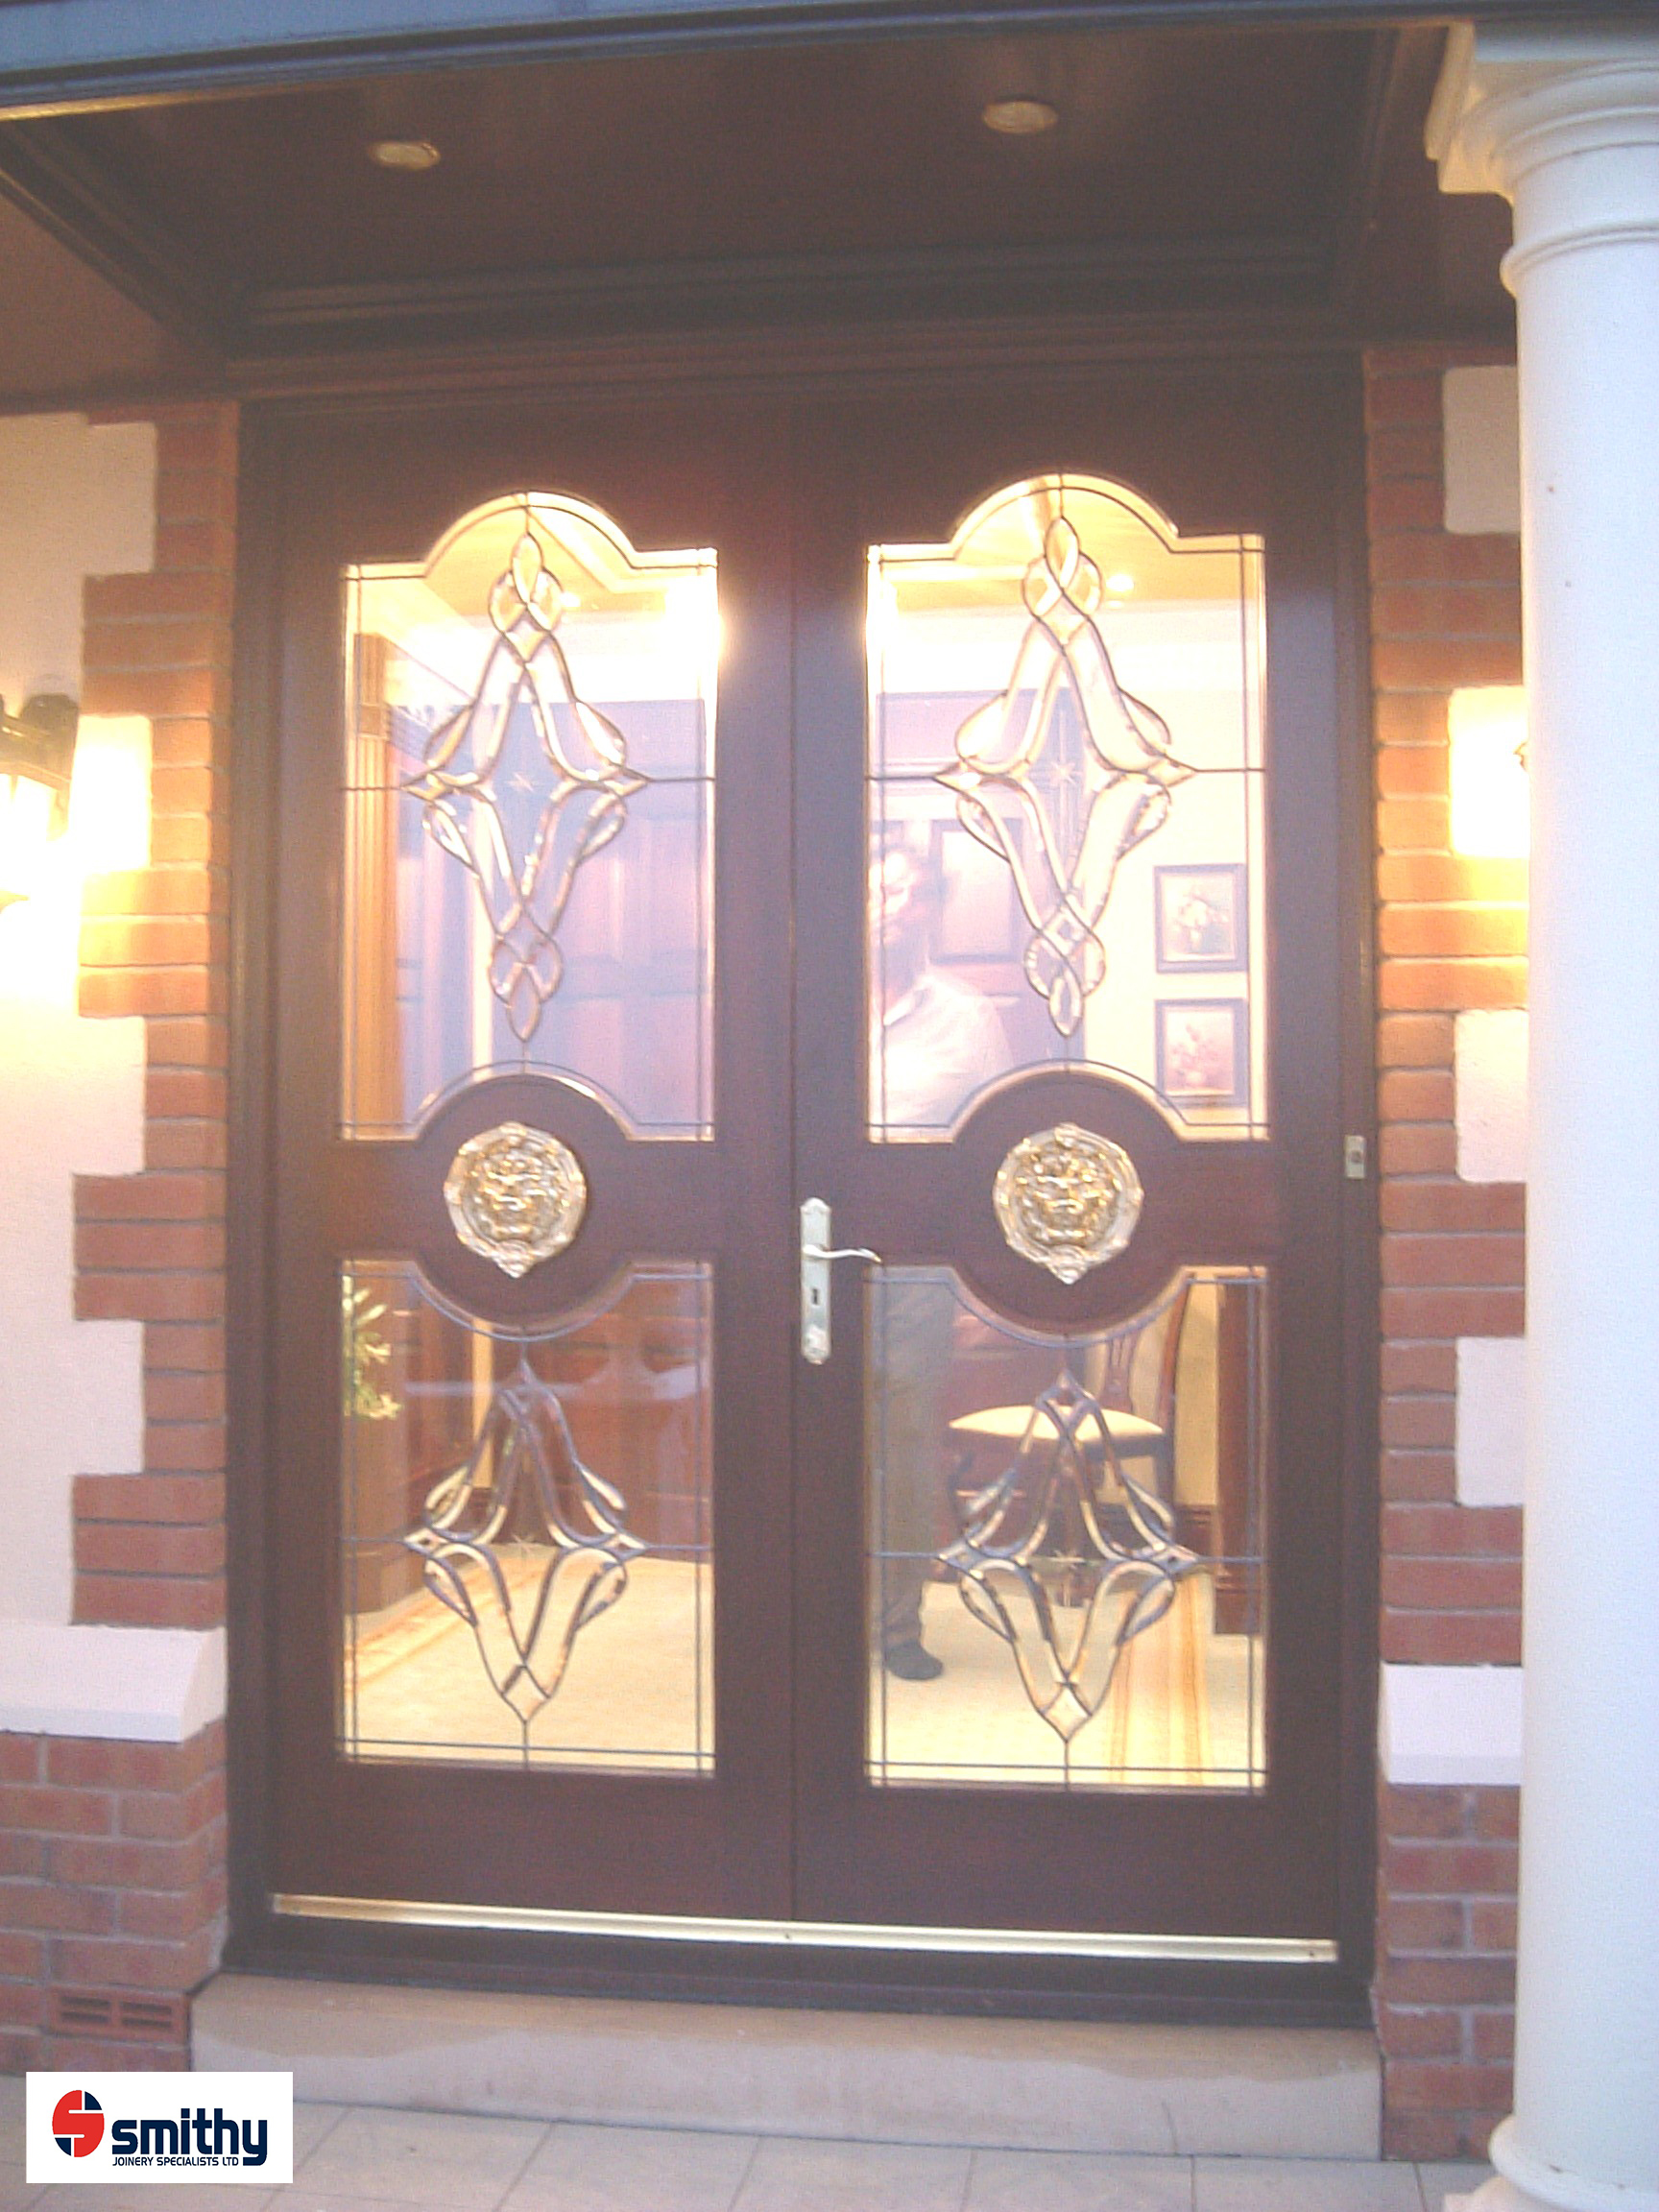 Bespoke front doors made from Sapele hardwood with glass lead design and lions head door knockers.